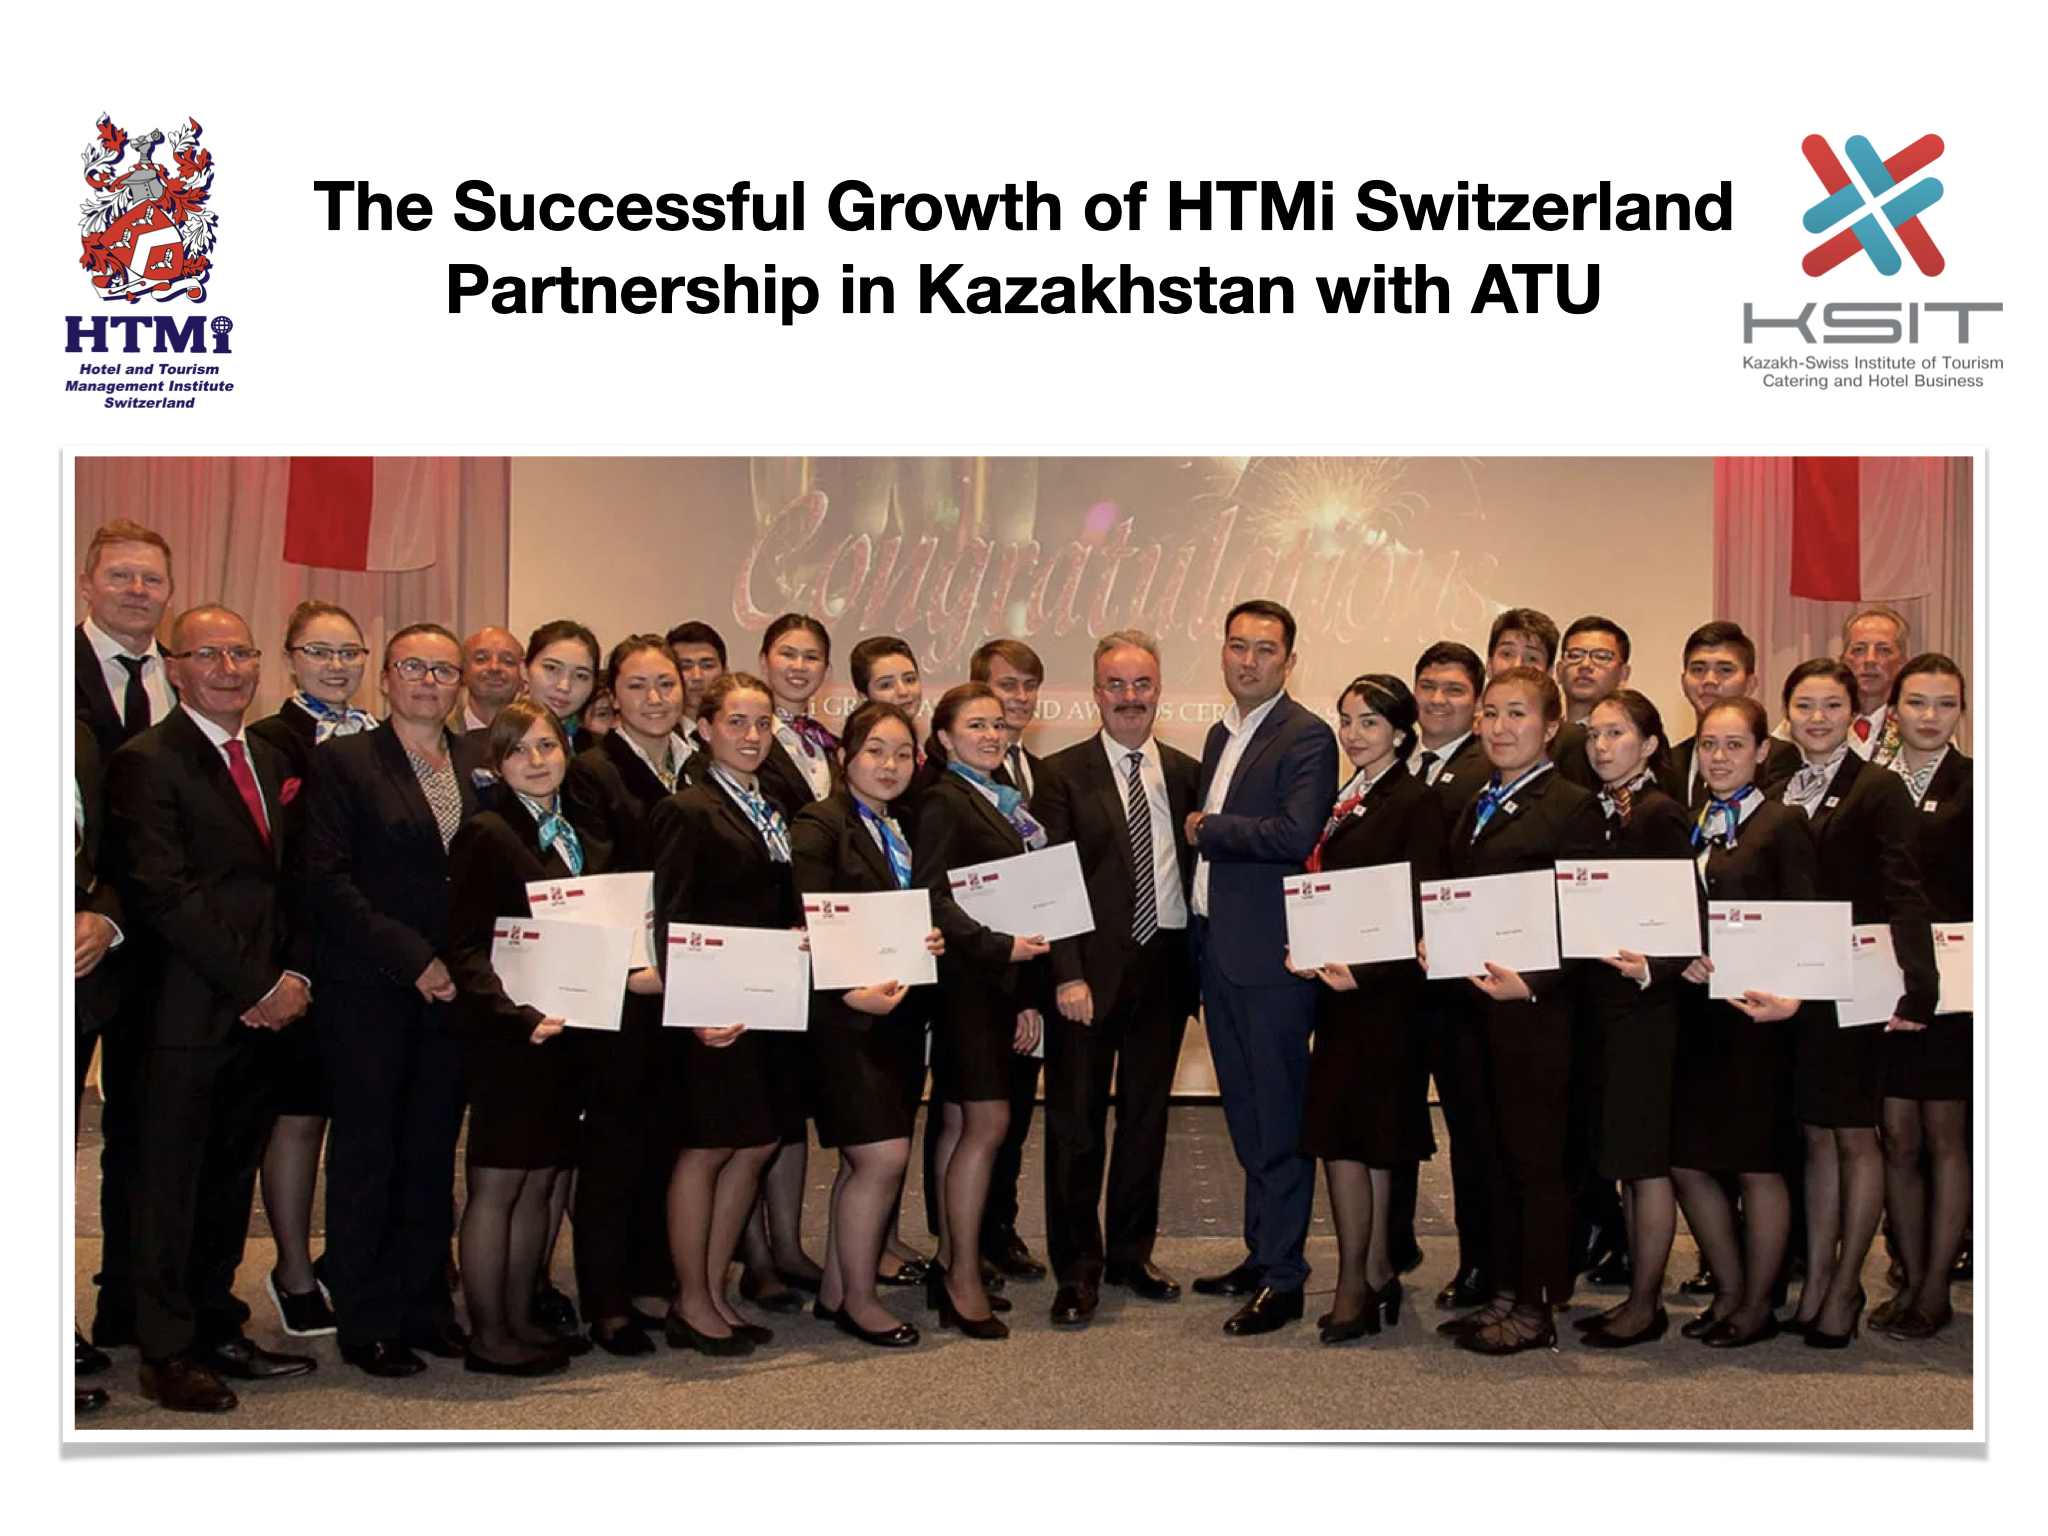 The Successful Growth of HTMi Switzerland Partnership in Kazakhstan with ATU